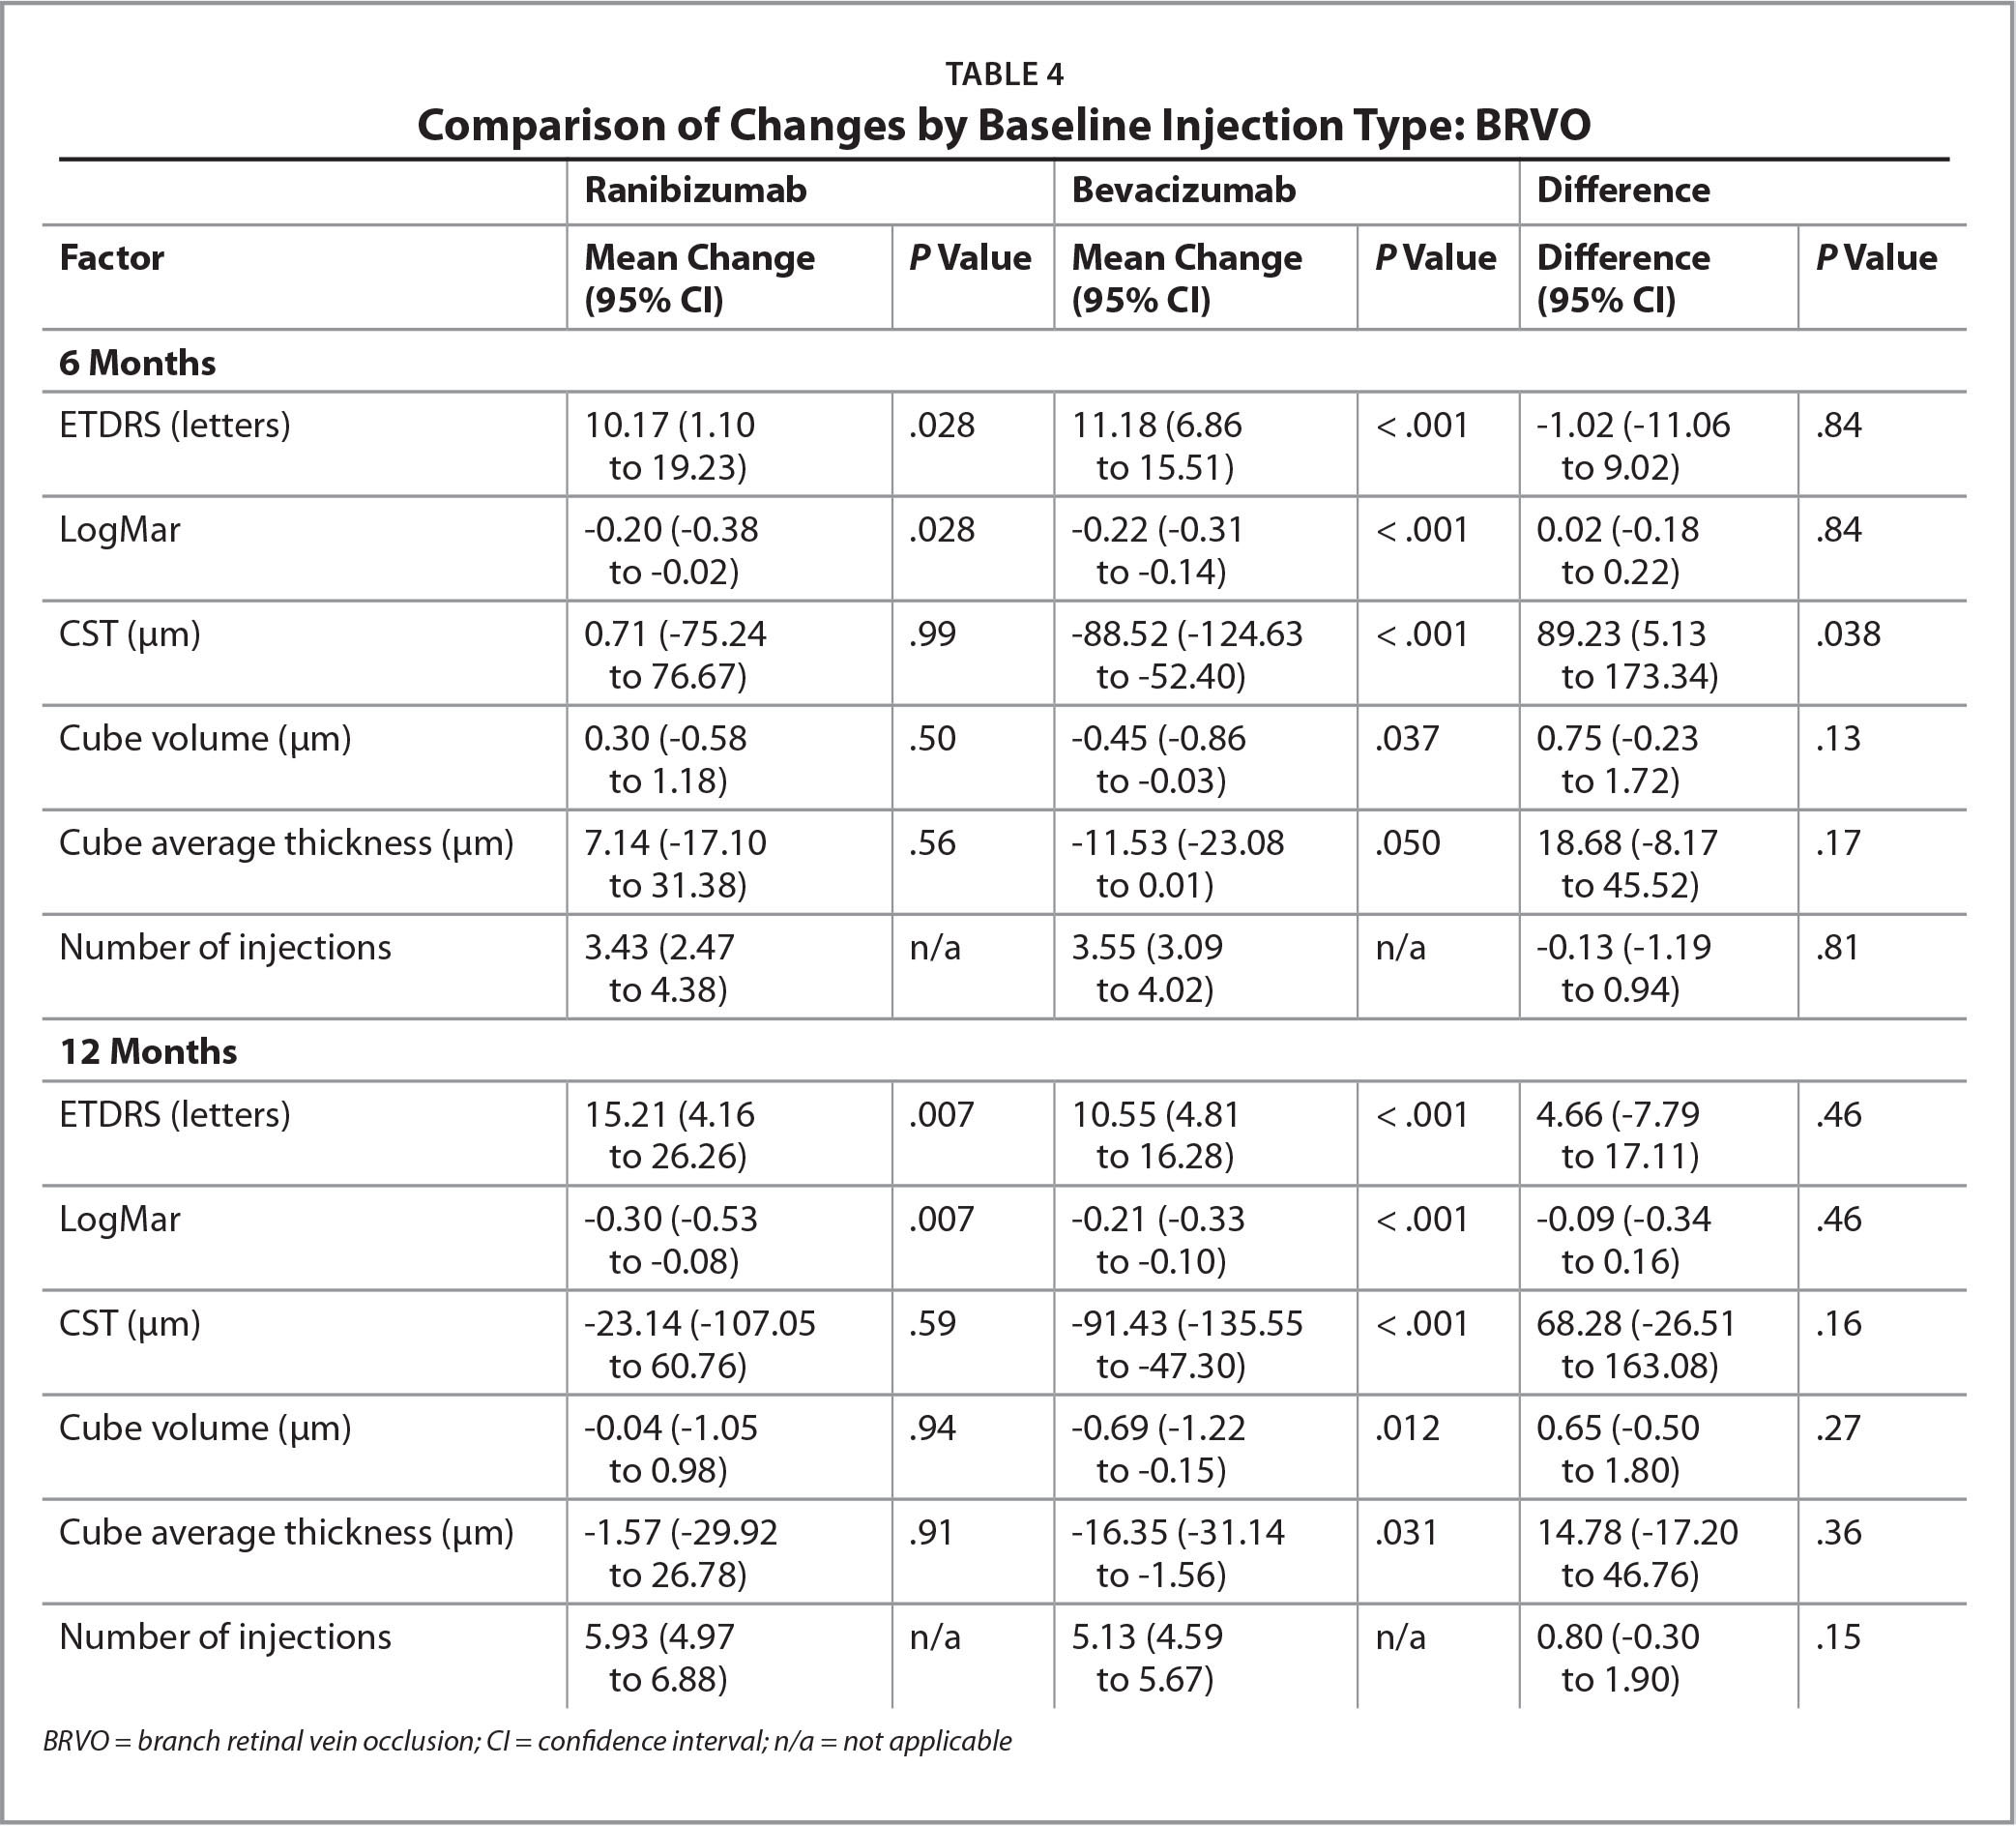 Comparison of Changes by Baseline Injection Type: BRVO